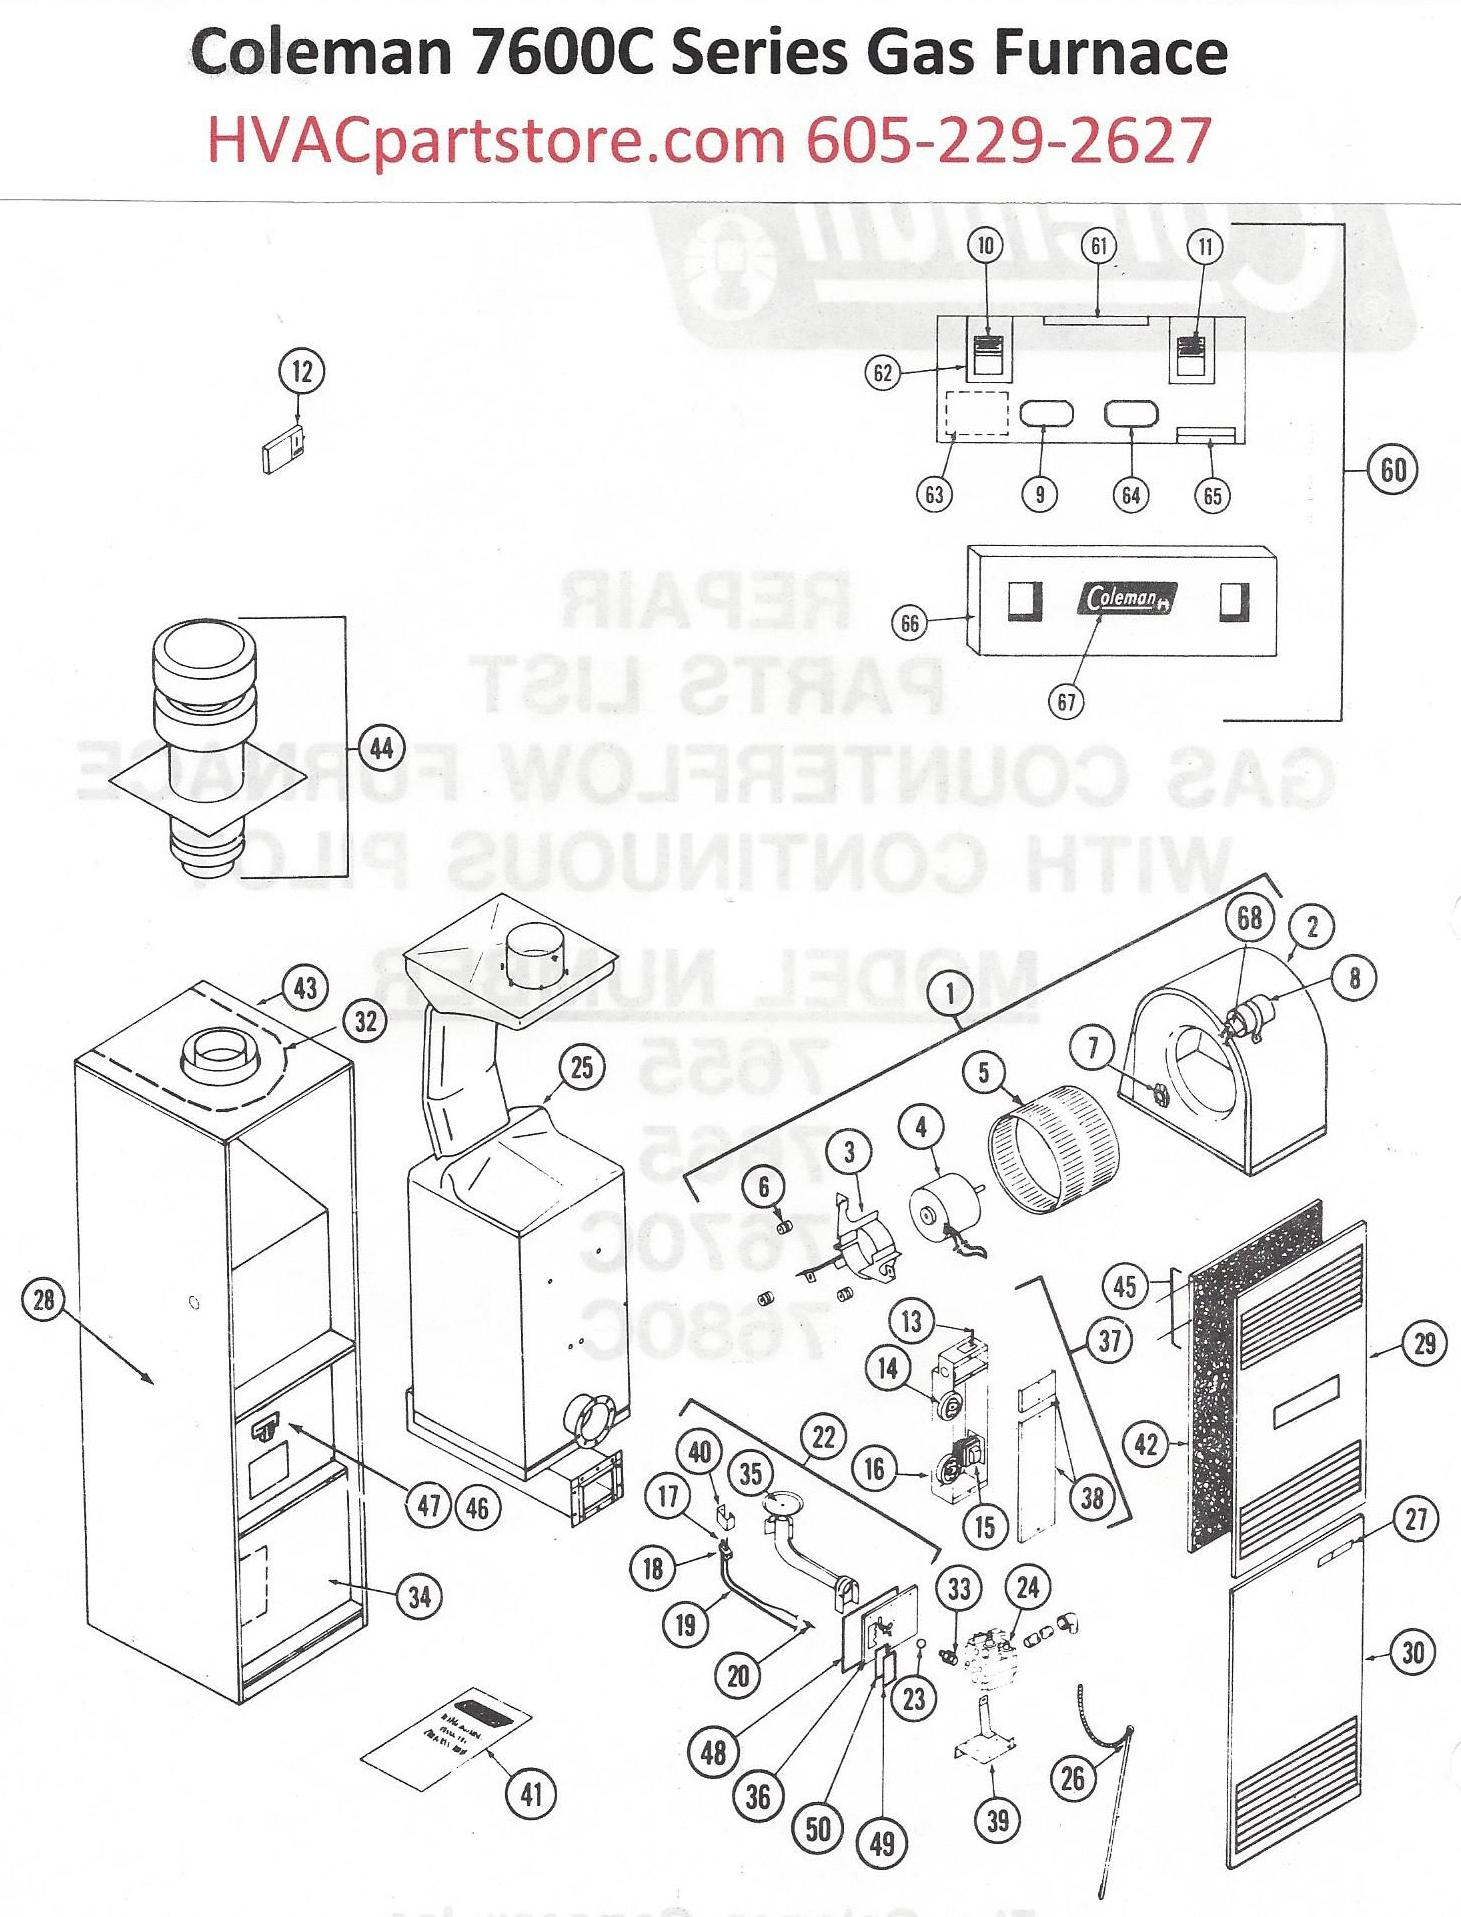 7670c856 coleman gas furnace parts hvacpartstore click here to view a manual for the coleman 7670c856 which includes wiring diagrams